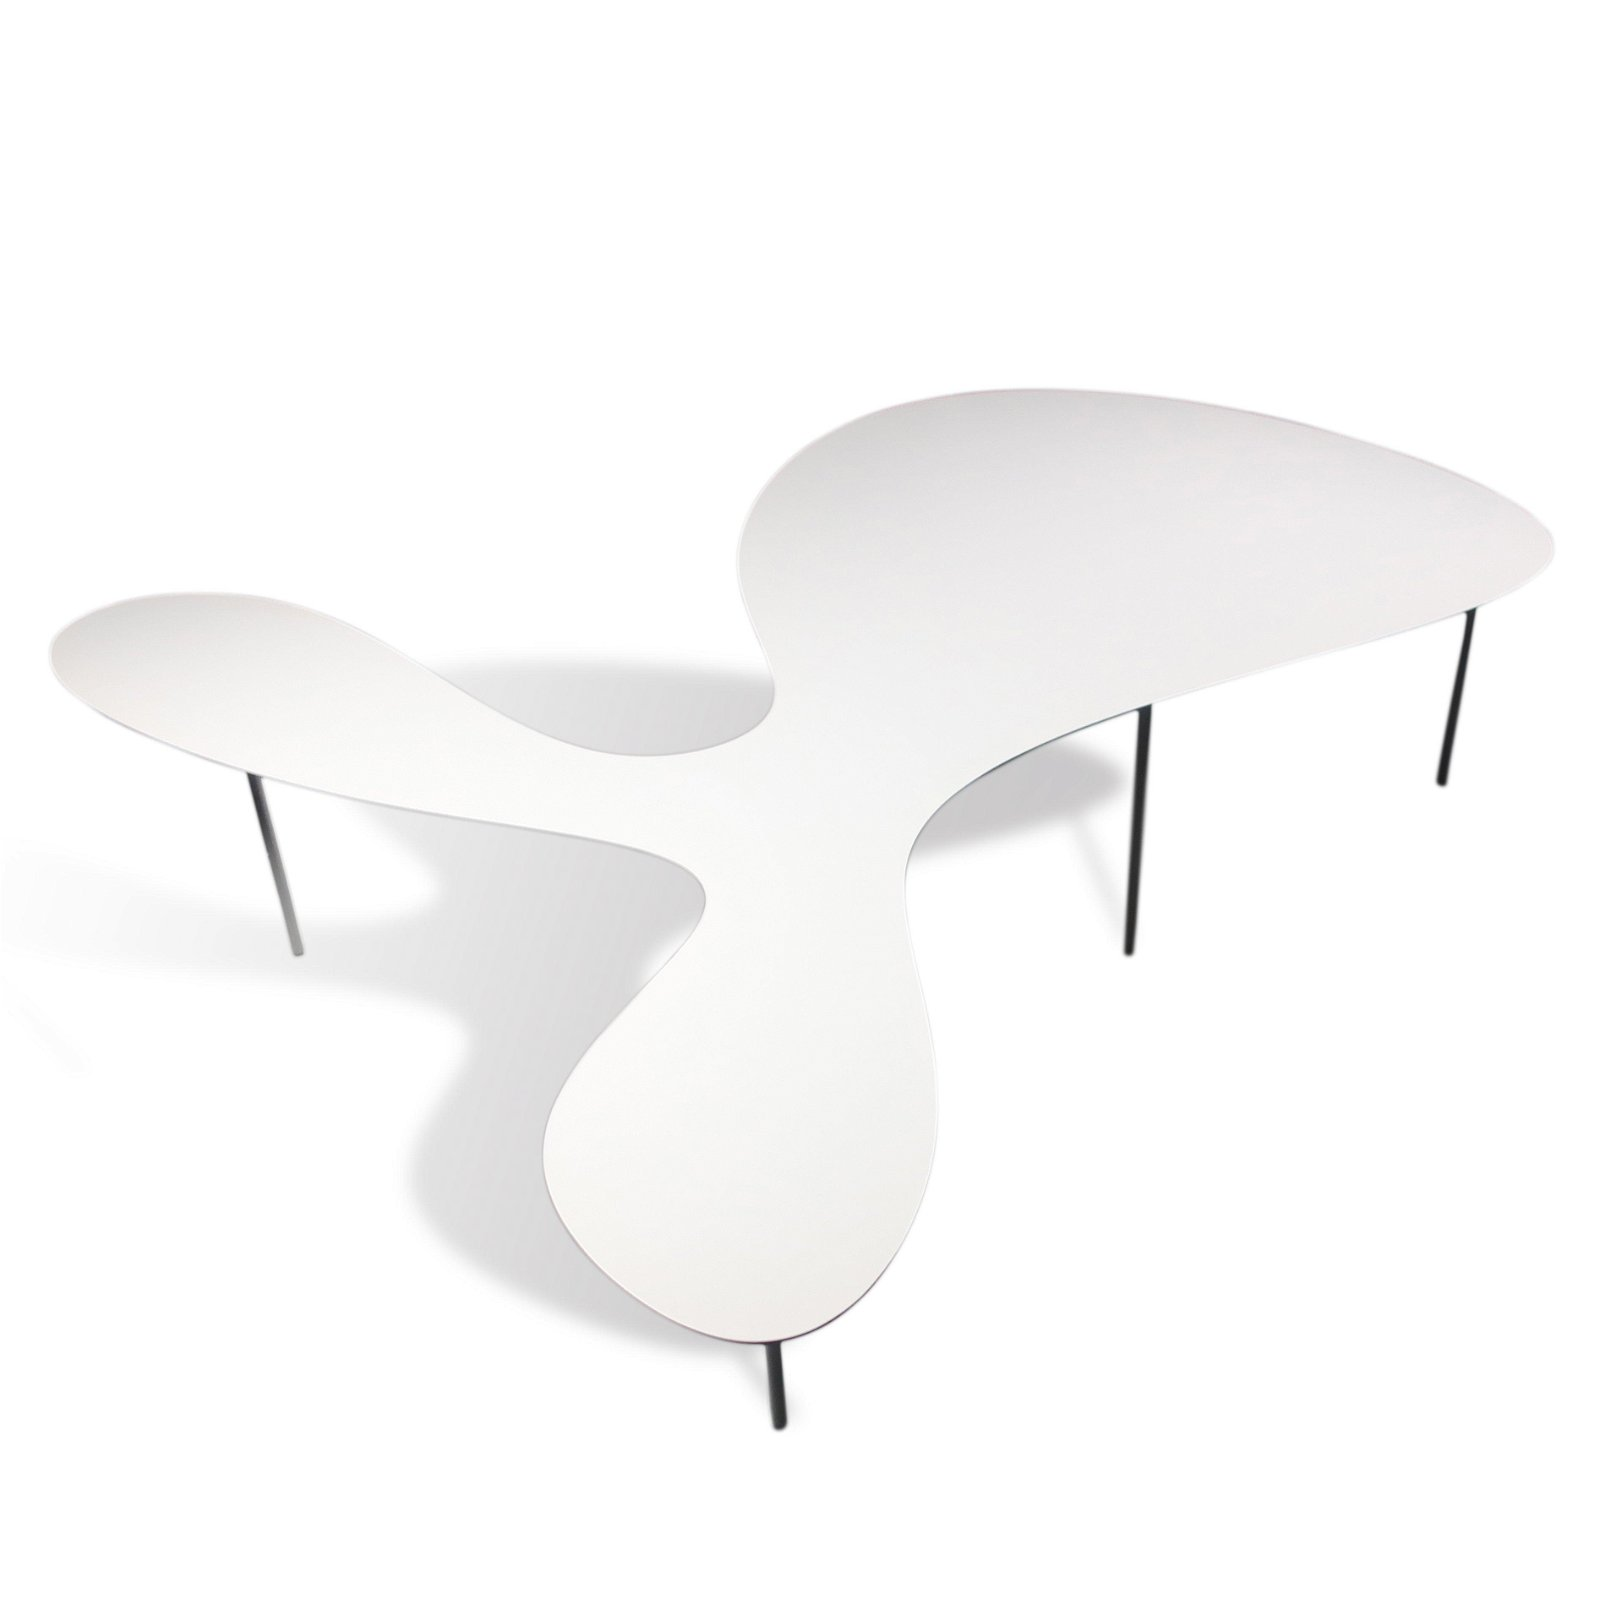 Rabbit Cocktail Table by Studio Juju for Living Divani